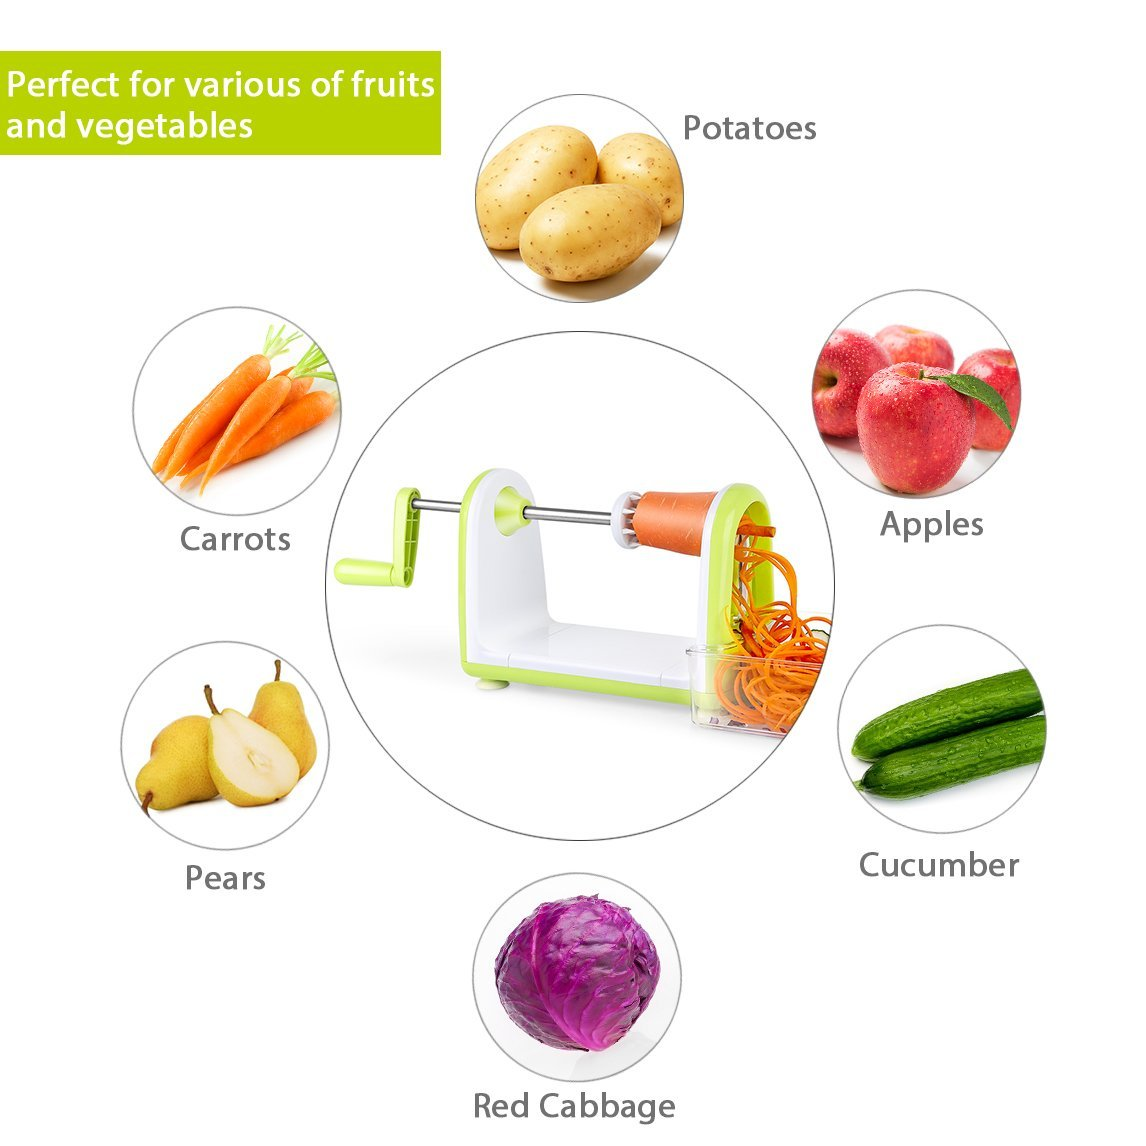 kitchen appliances| vegetable cutter| shredder| chop| Health